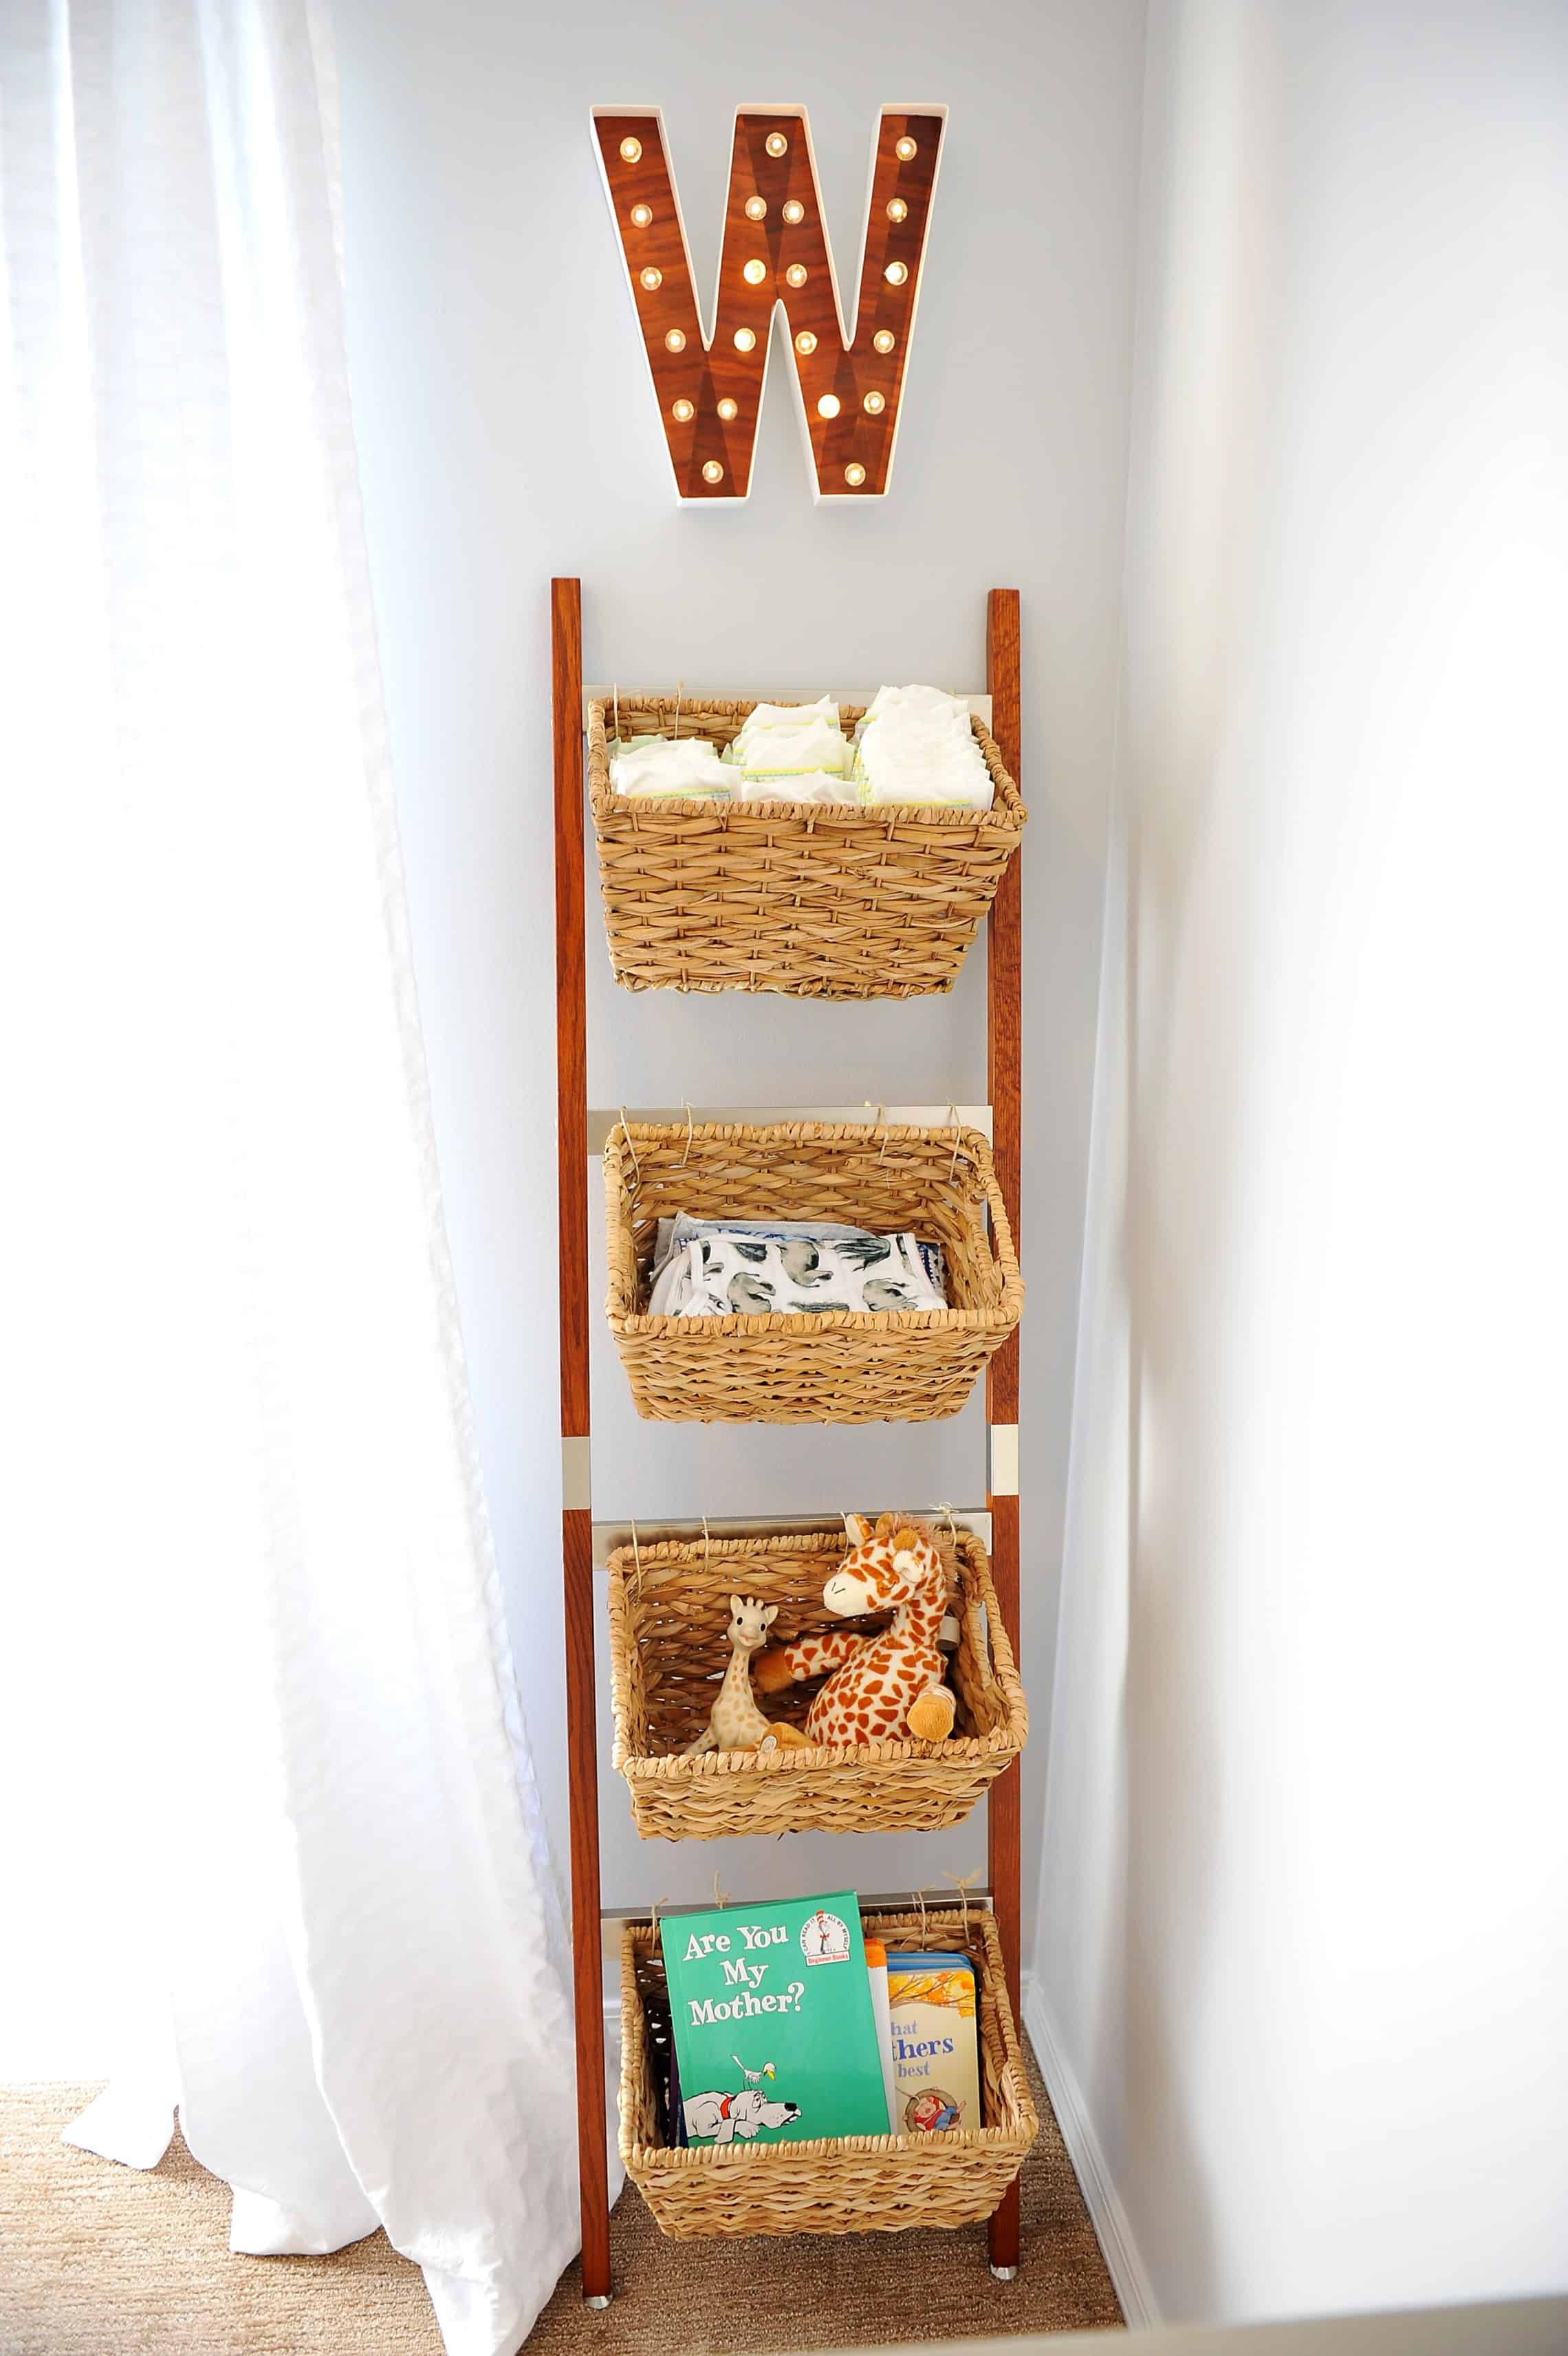 Wicker basket storage ladder with nursery items and hanging W over it